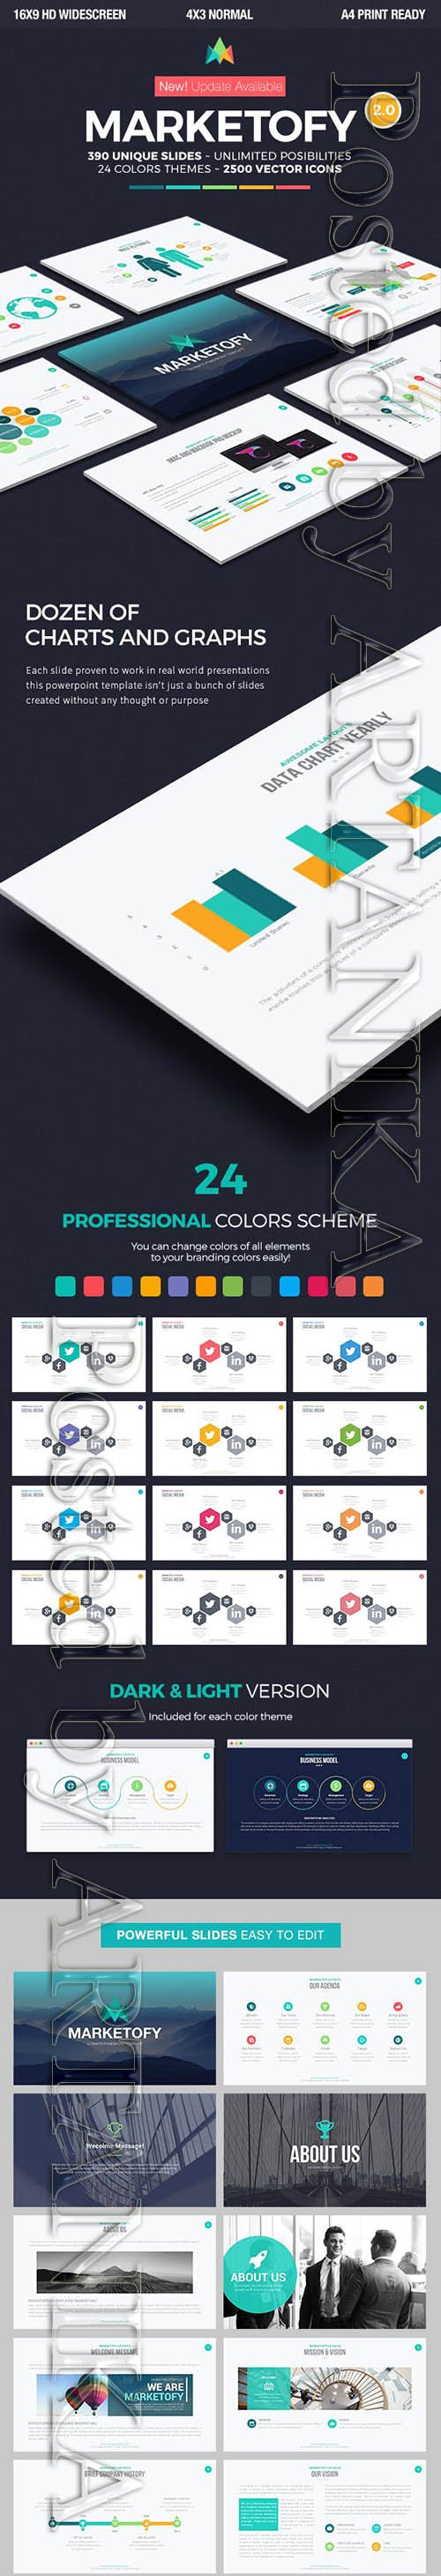 Graphicriver - Marketofy - Ultimate PowerPoint Template 13231486